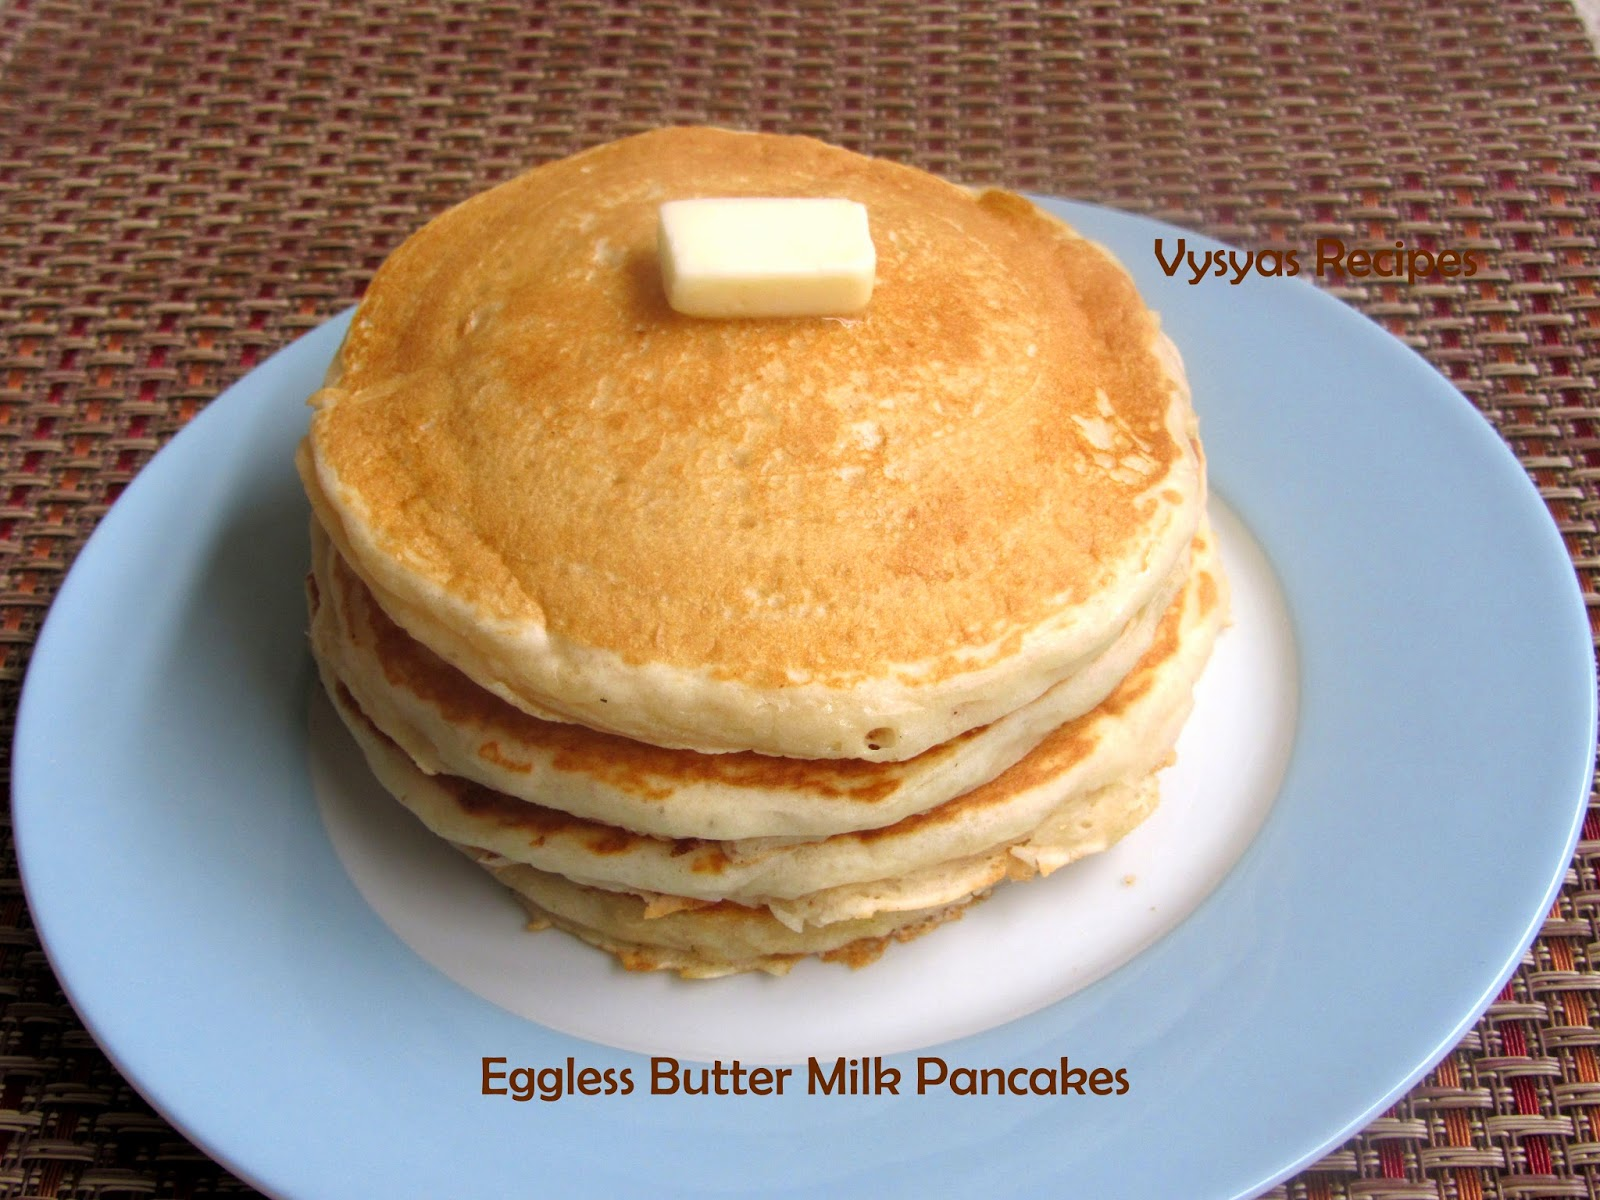 Eggless Butter Milk Pancakes